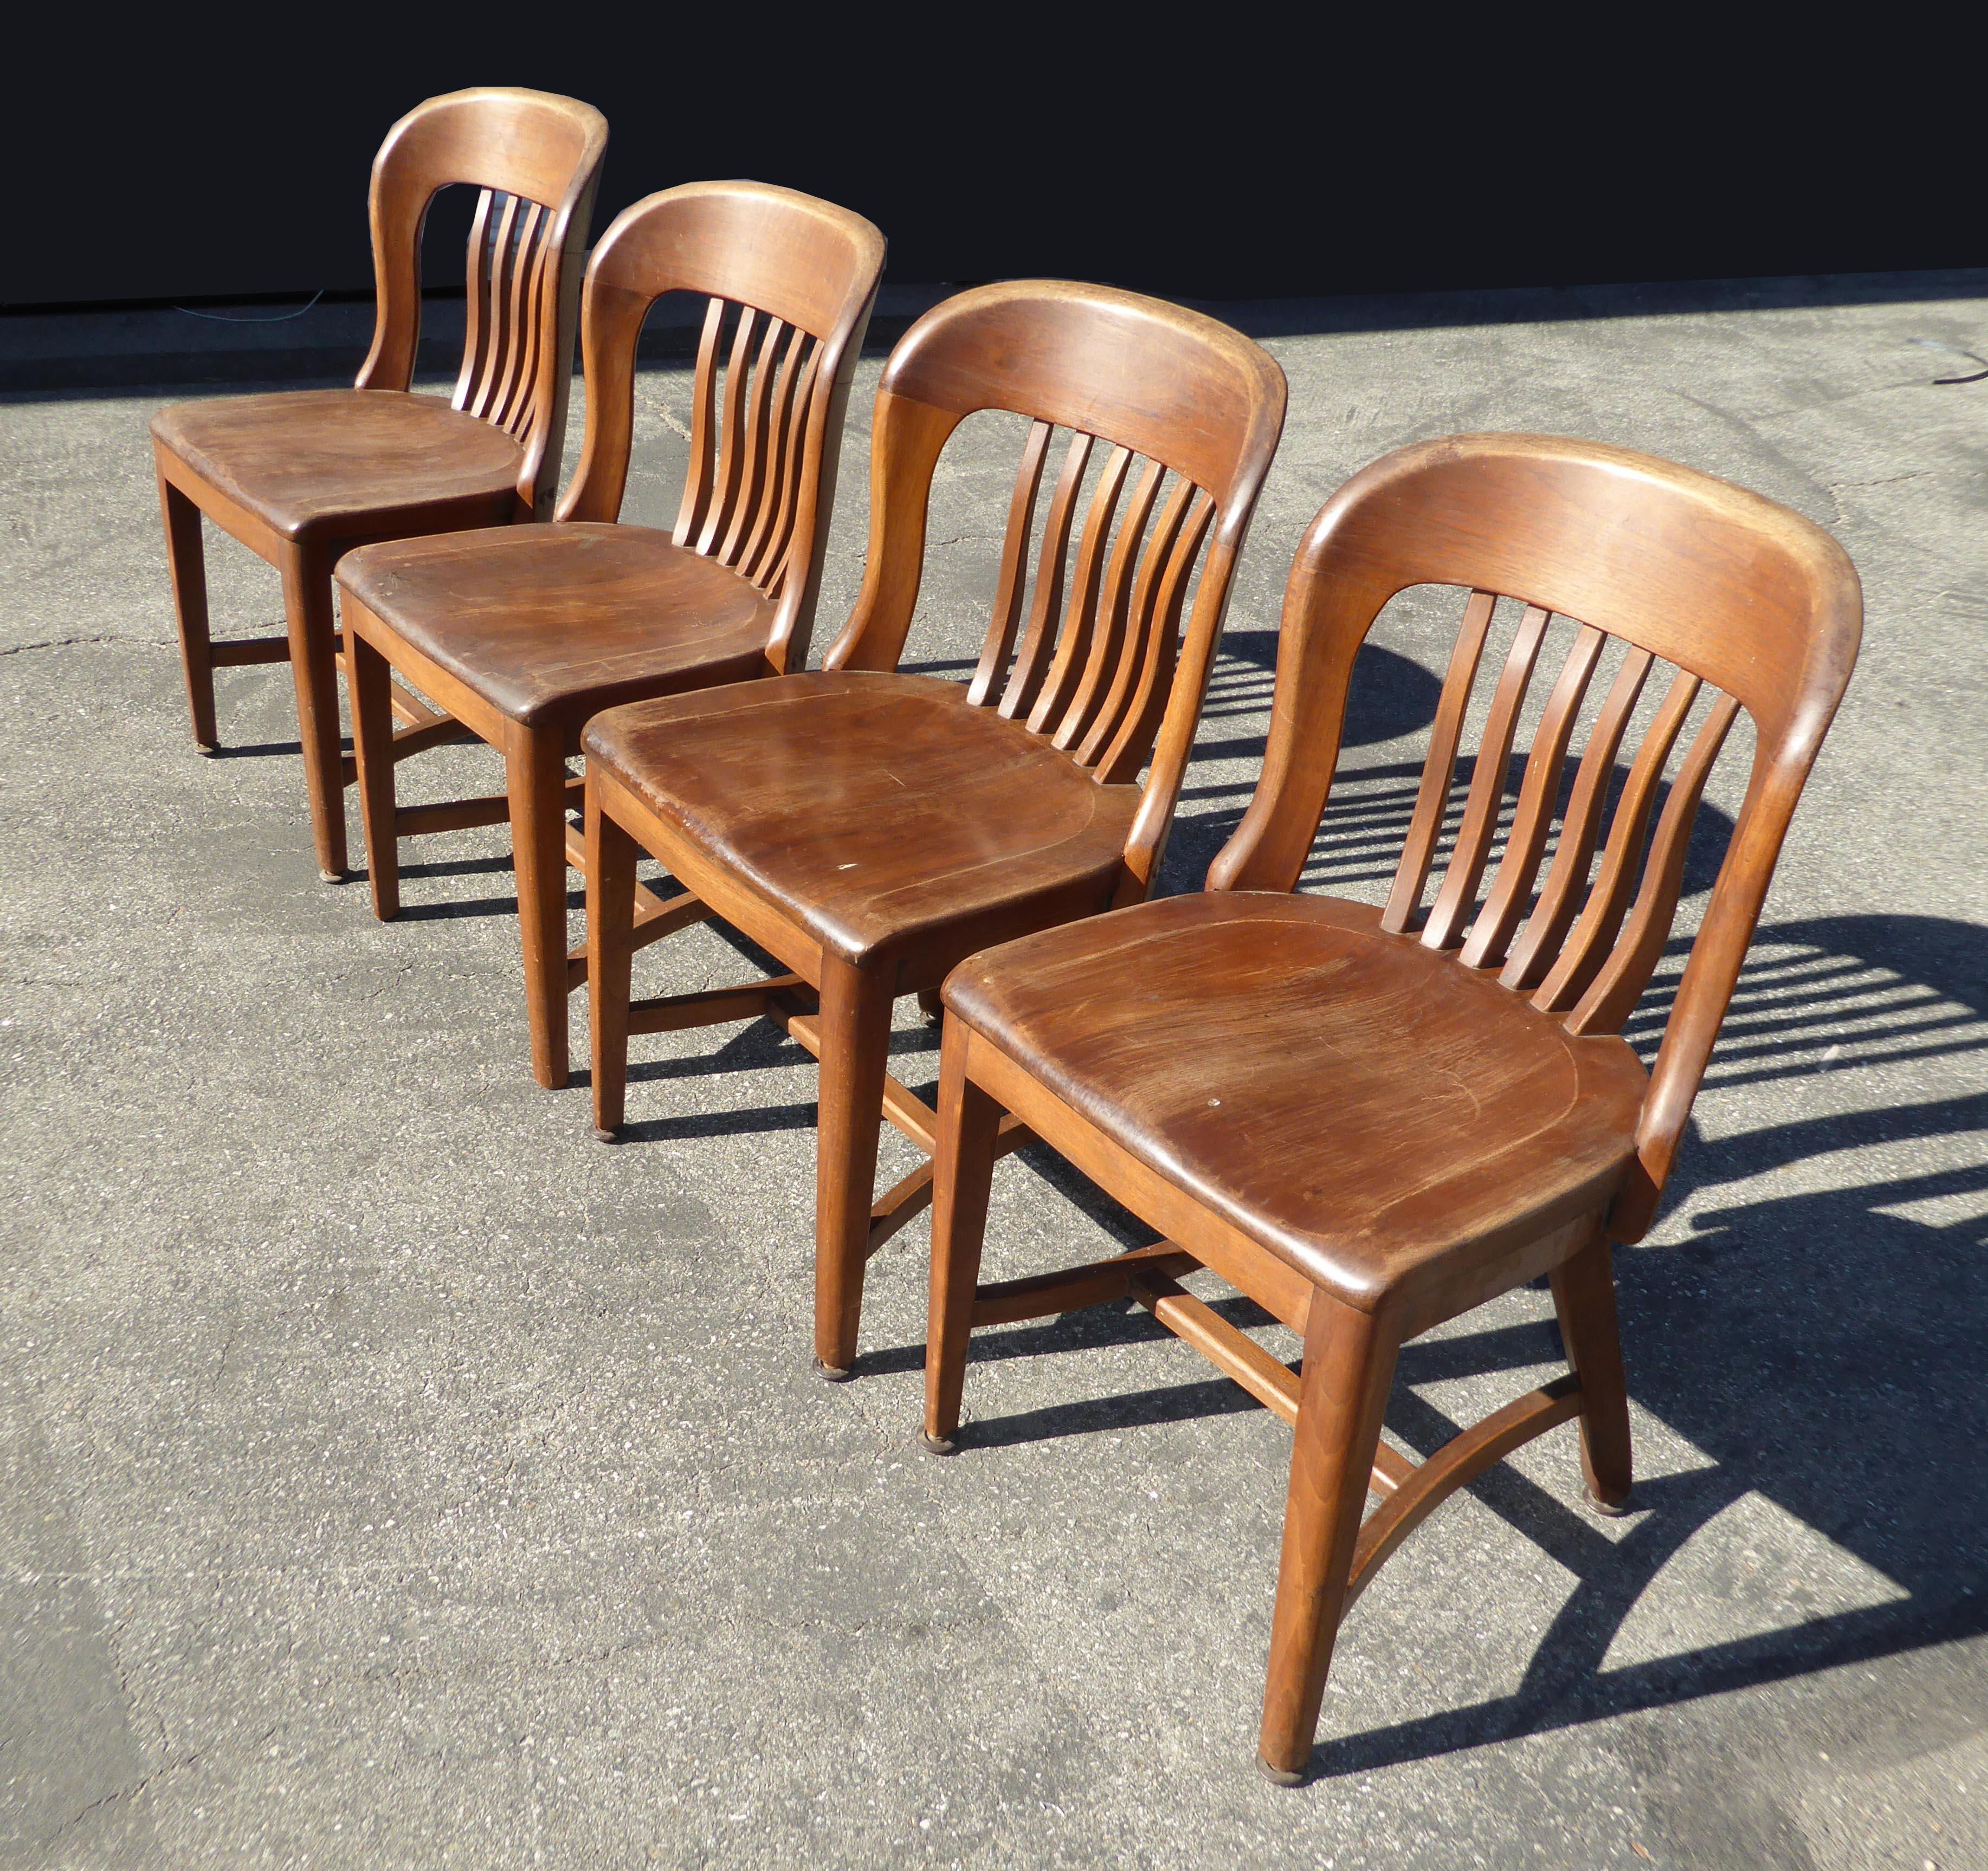 Elegant Set Of 4 Vintage Mid Century Brown Solid Wood Farmhouse Chic Library School  House Chairs